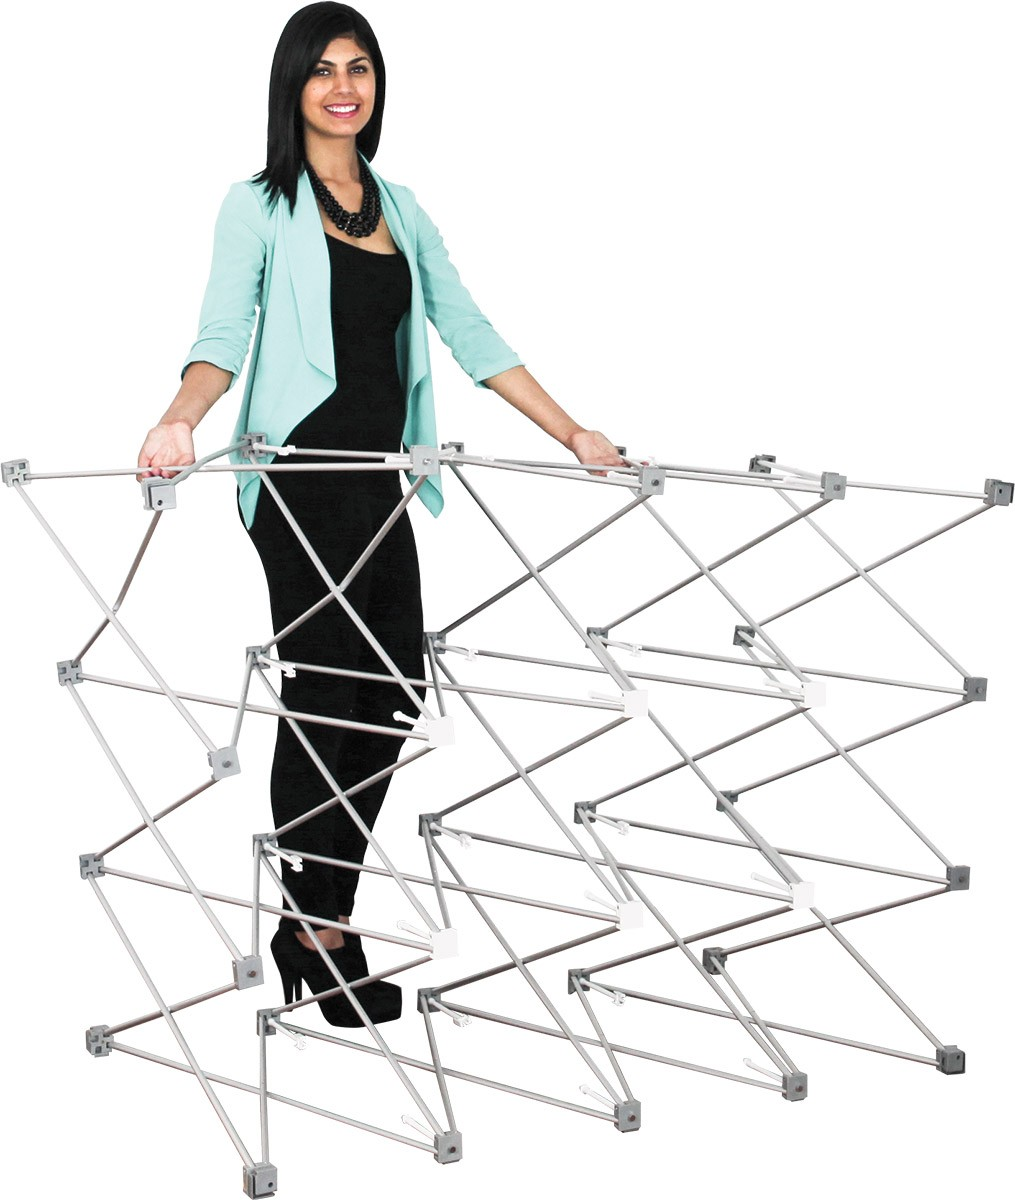 Embrace 2.5' Tension Fabric Display